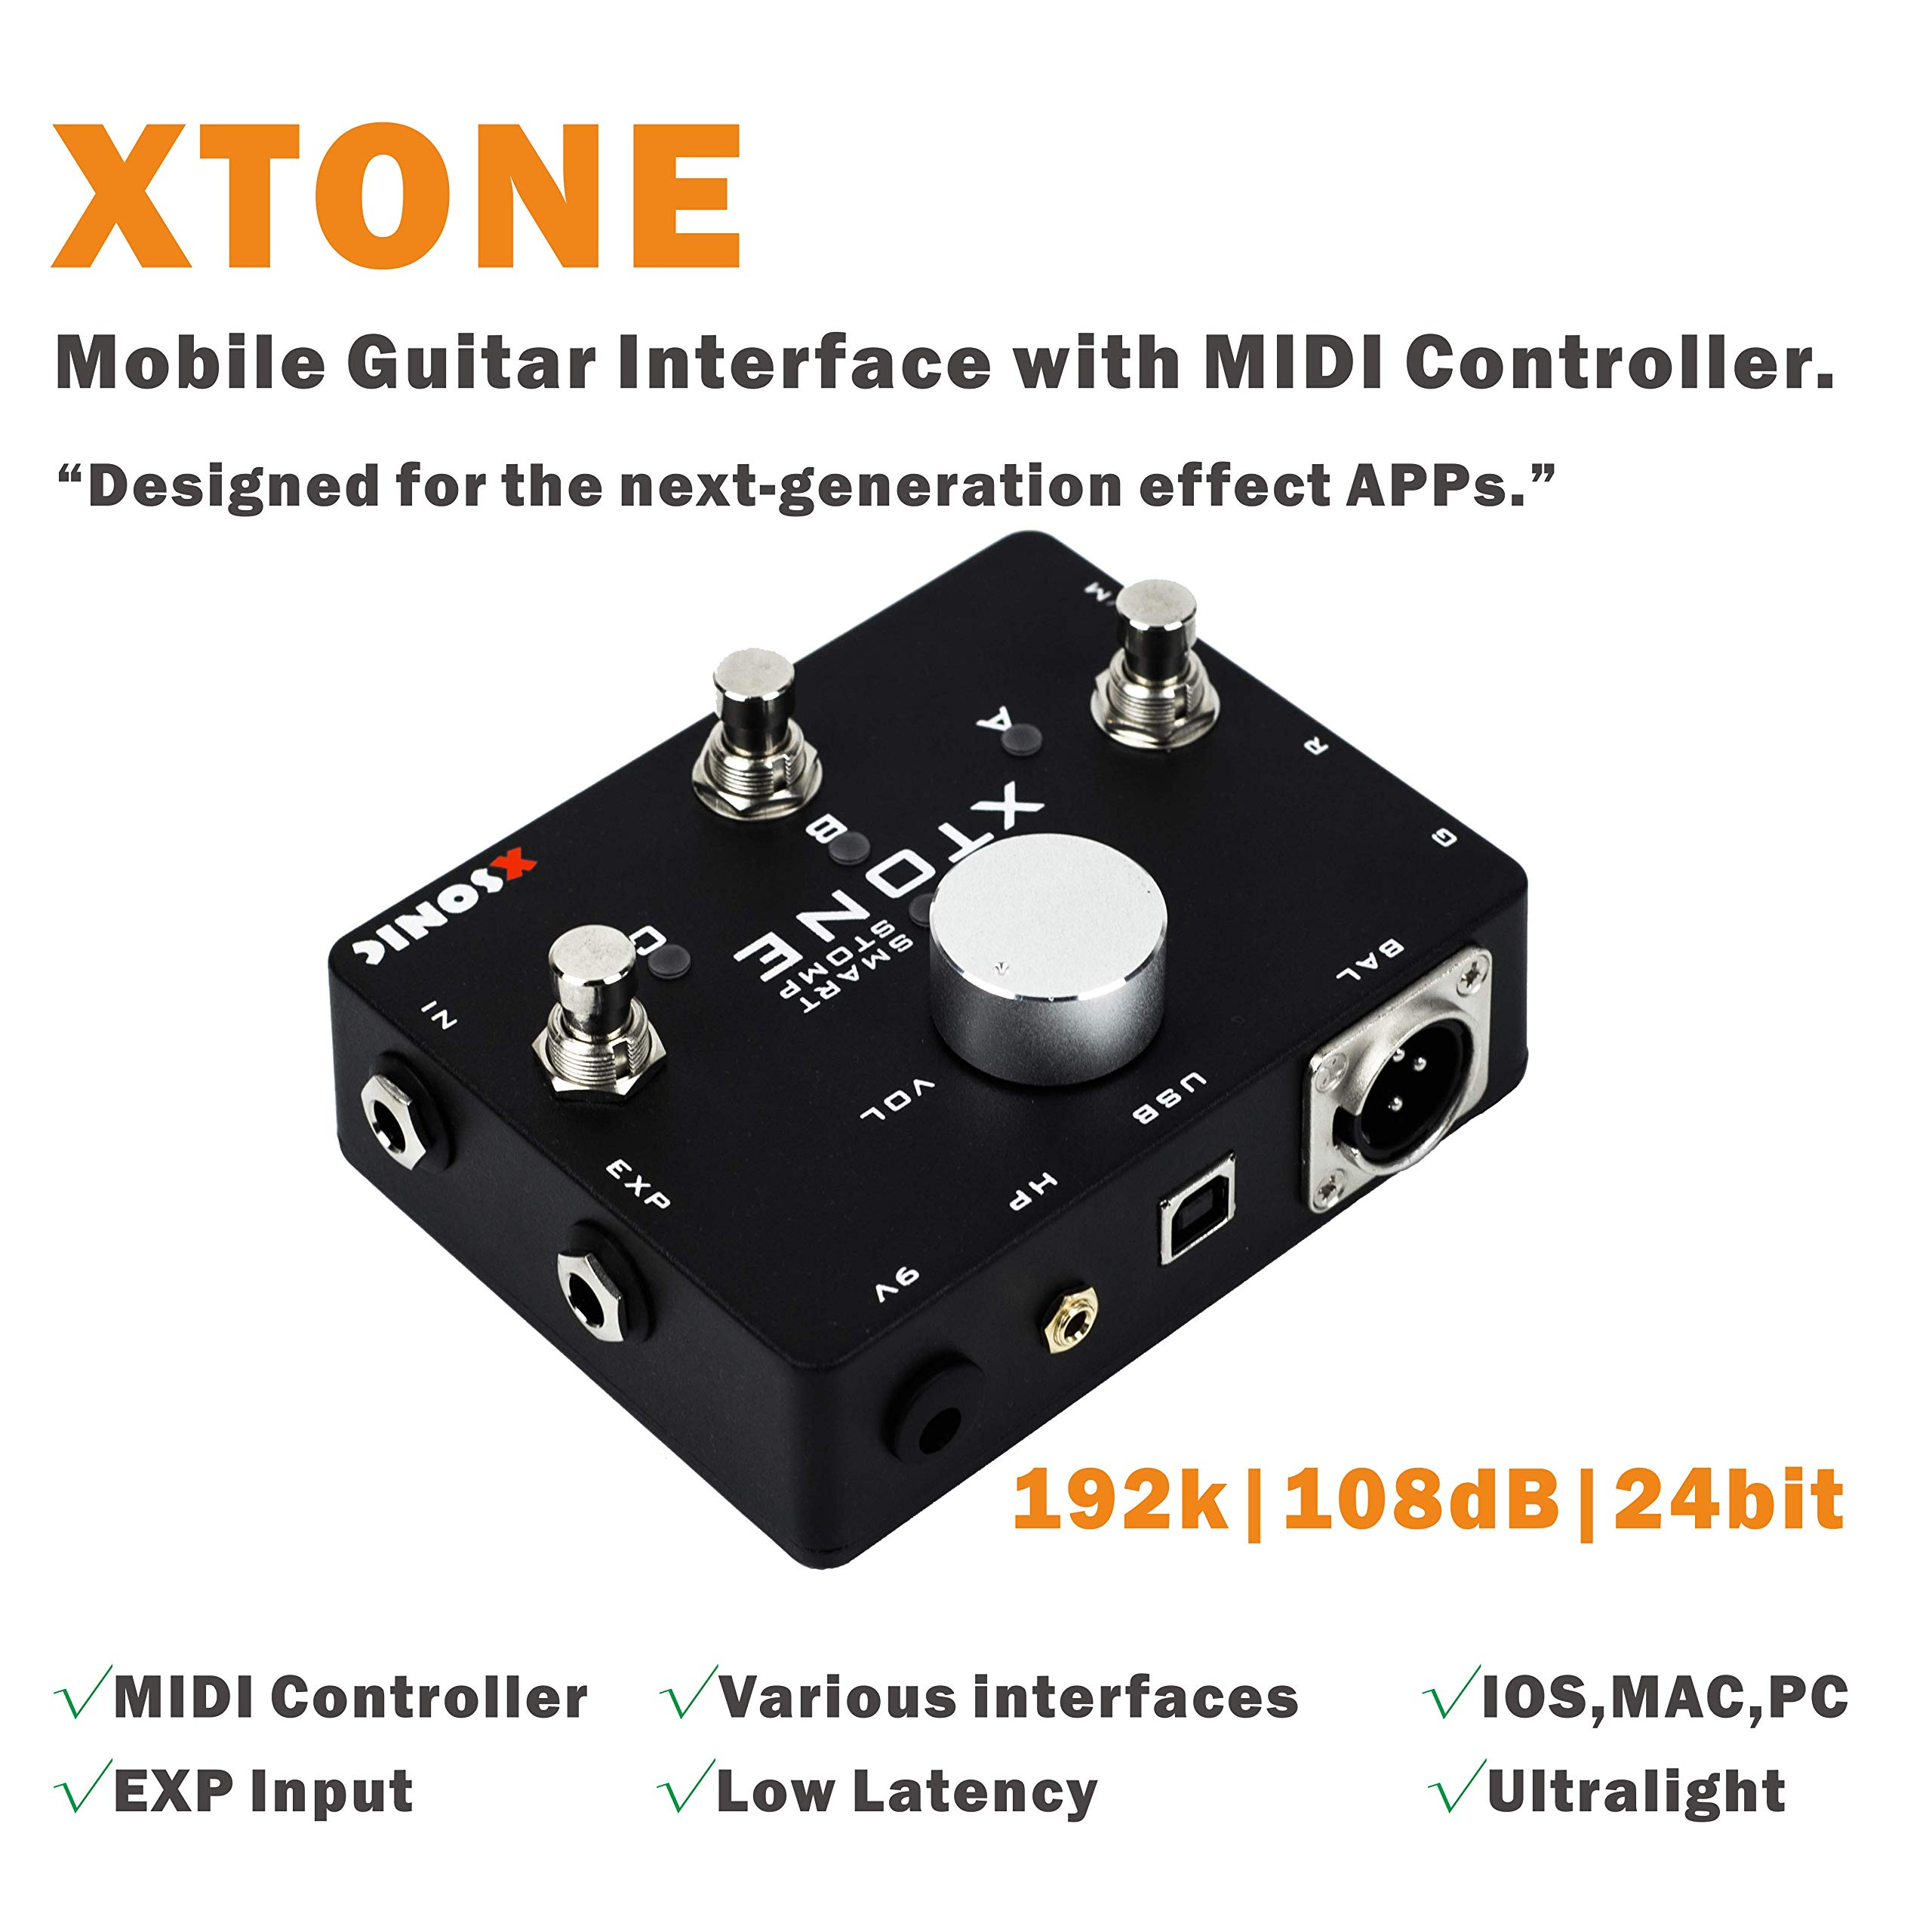 XTONE 192K Mobile Guitar Interface With MIDI Controller & Ultra Low Latency & BIAS & JamUp by XSONIC (Image #2)